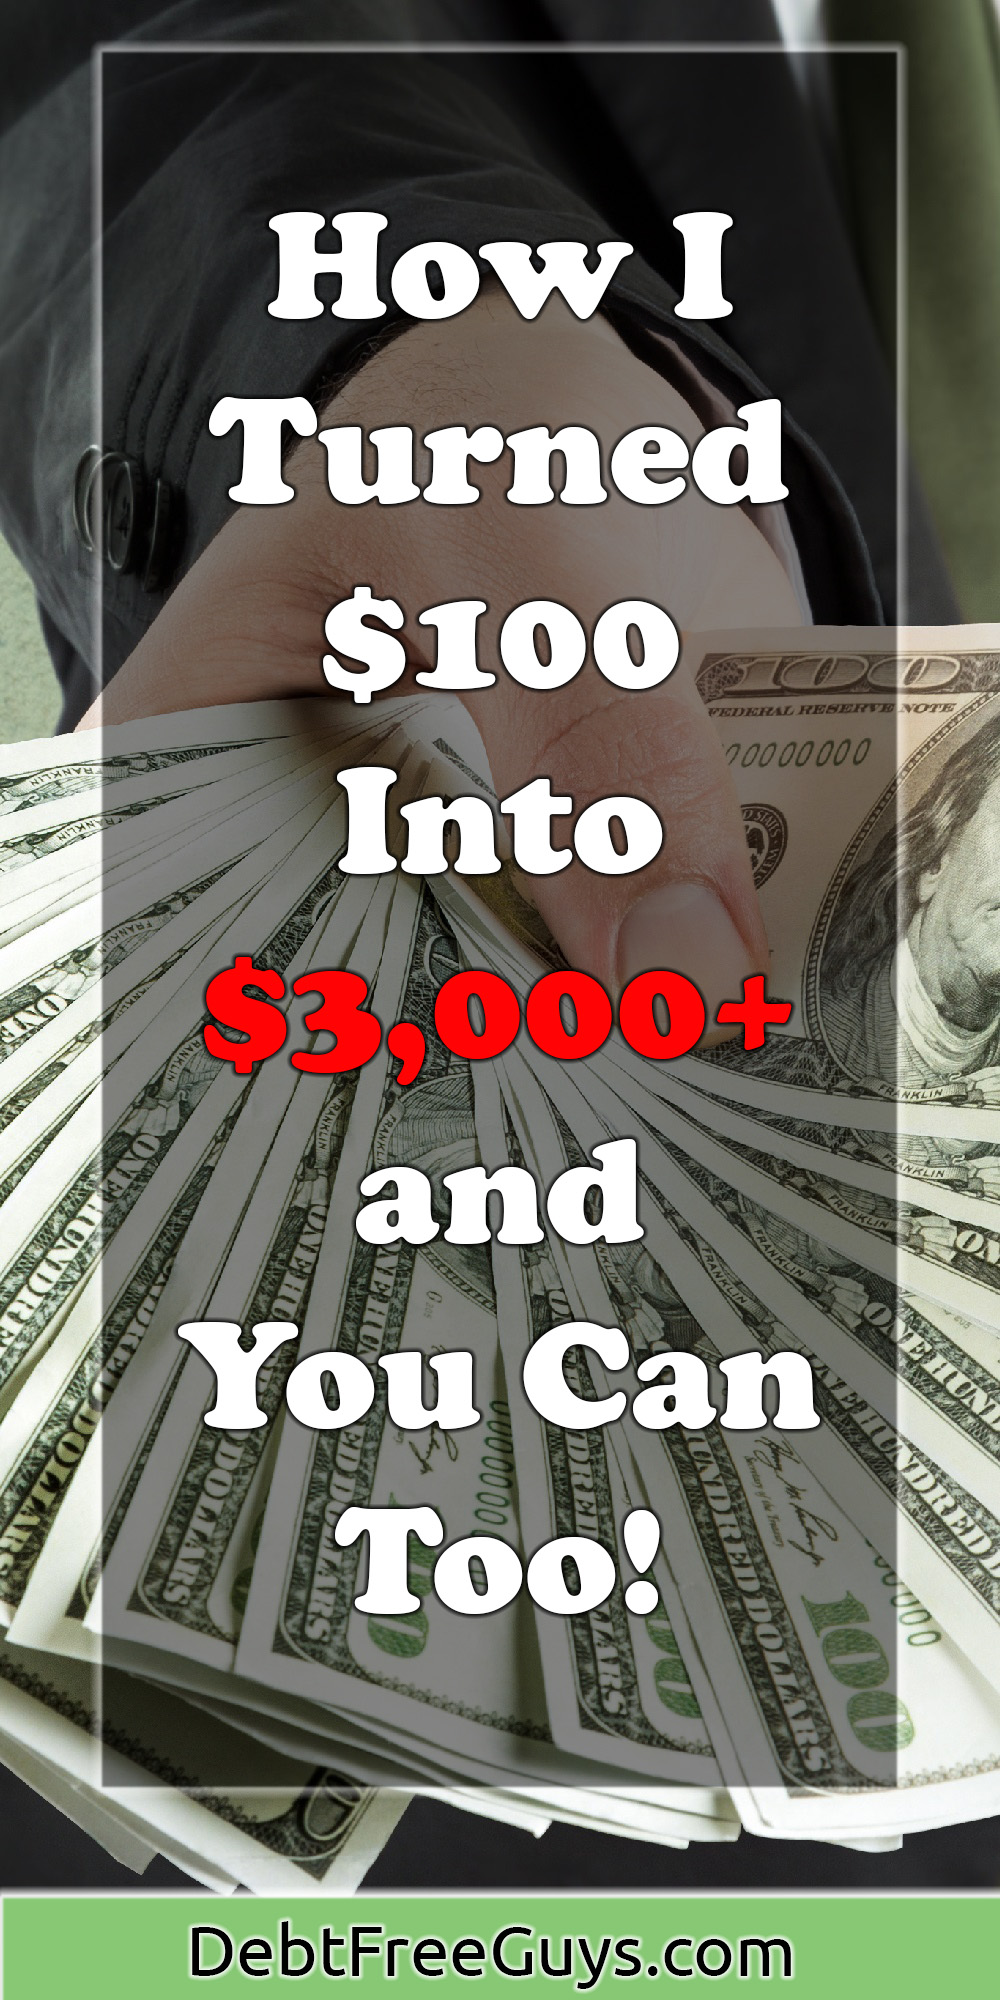 This was our best investments ever to pay off all our debt. We took a $100 purchase and turned it into a $3,000 investment. Get all the details in this simple video and share with all your friends.